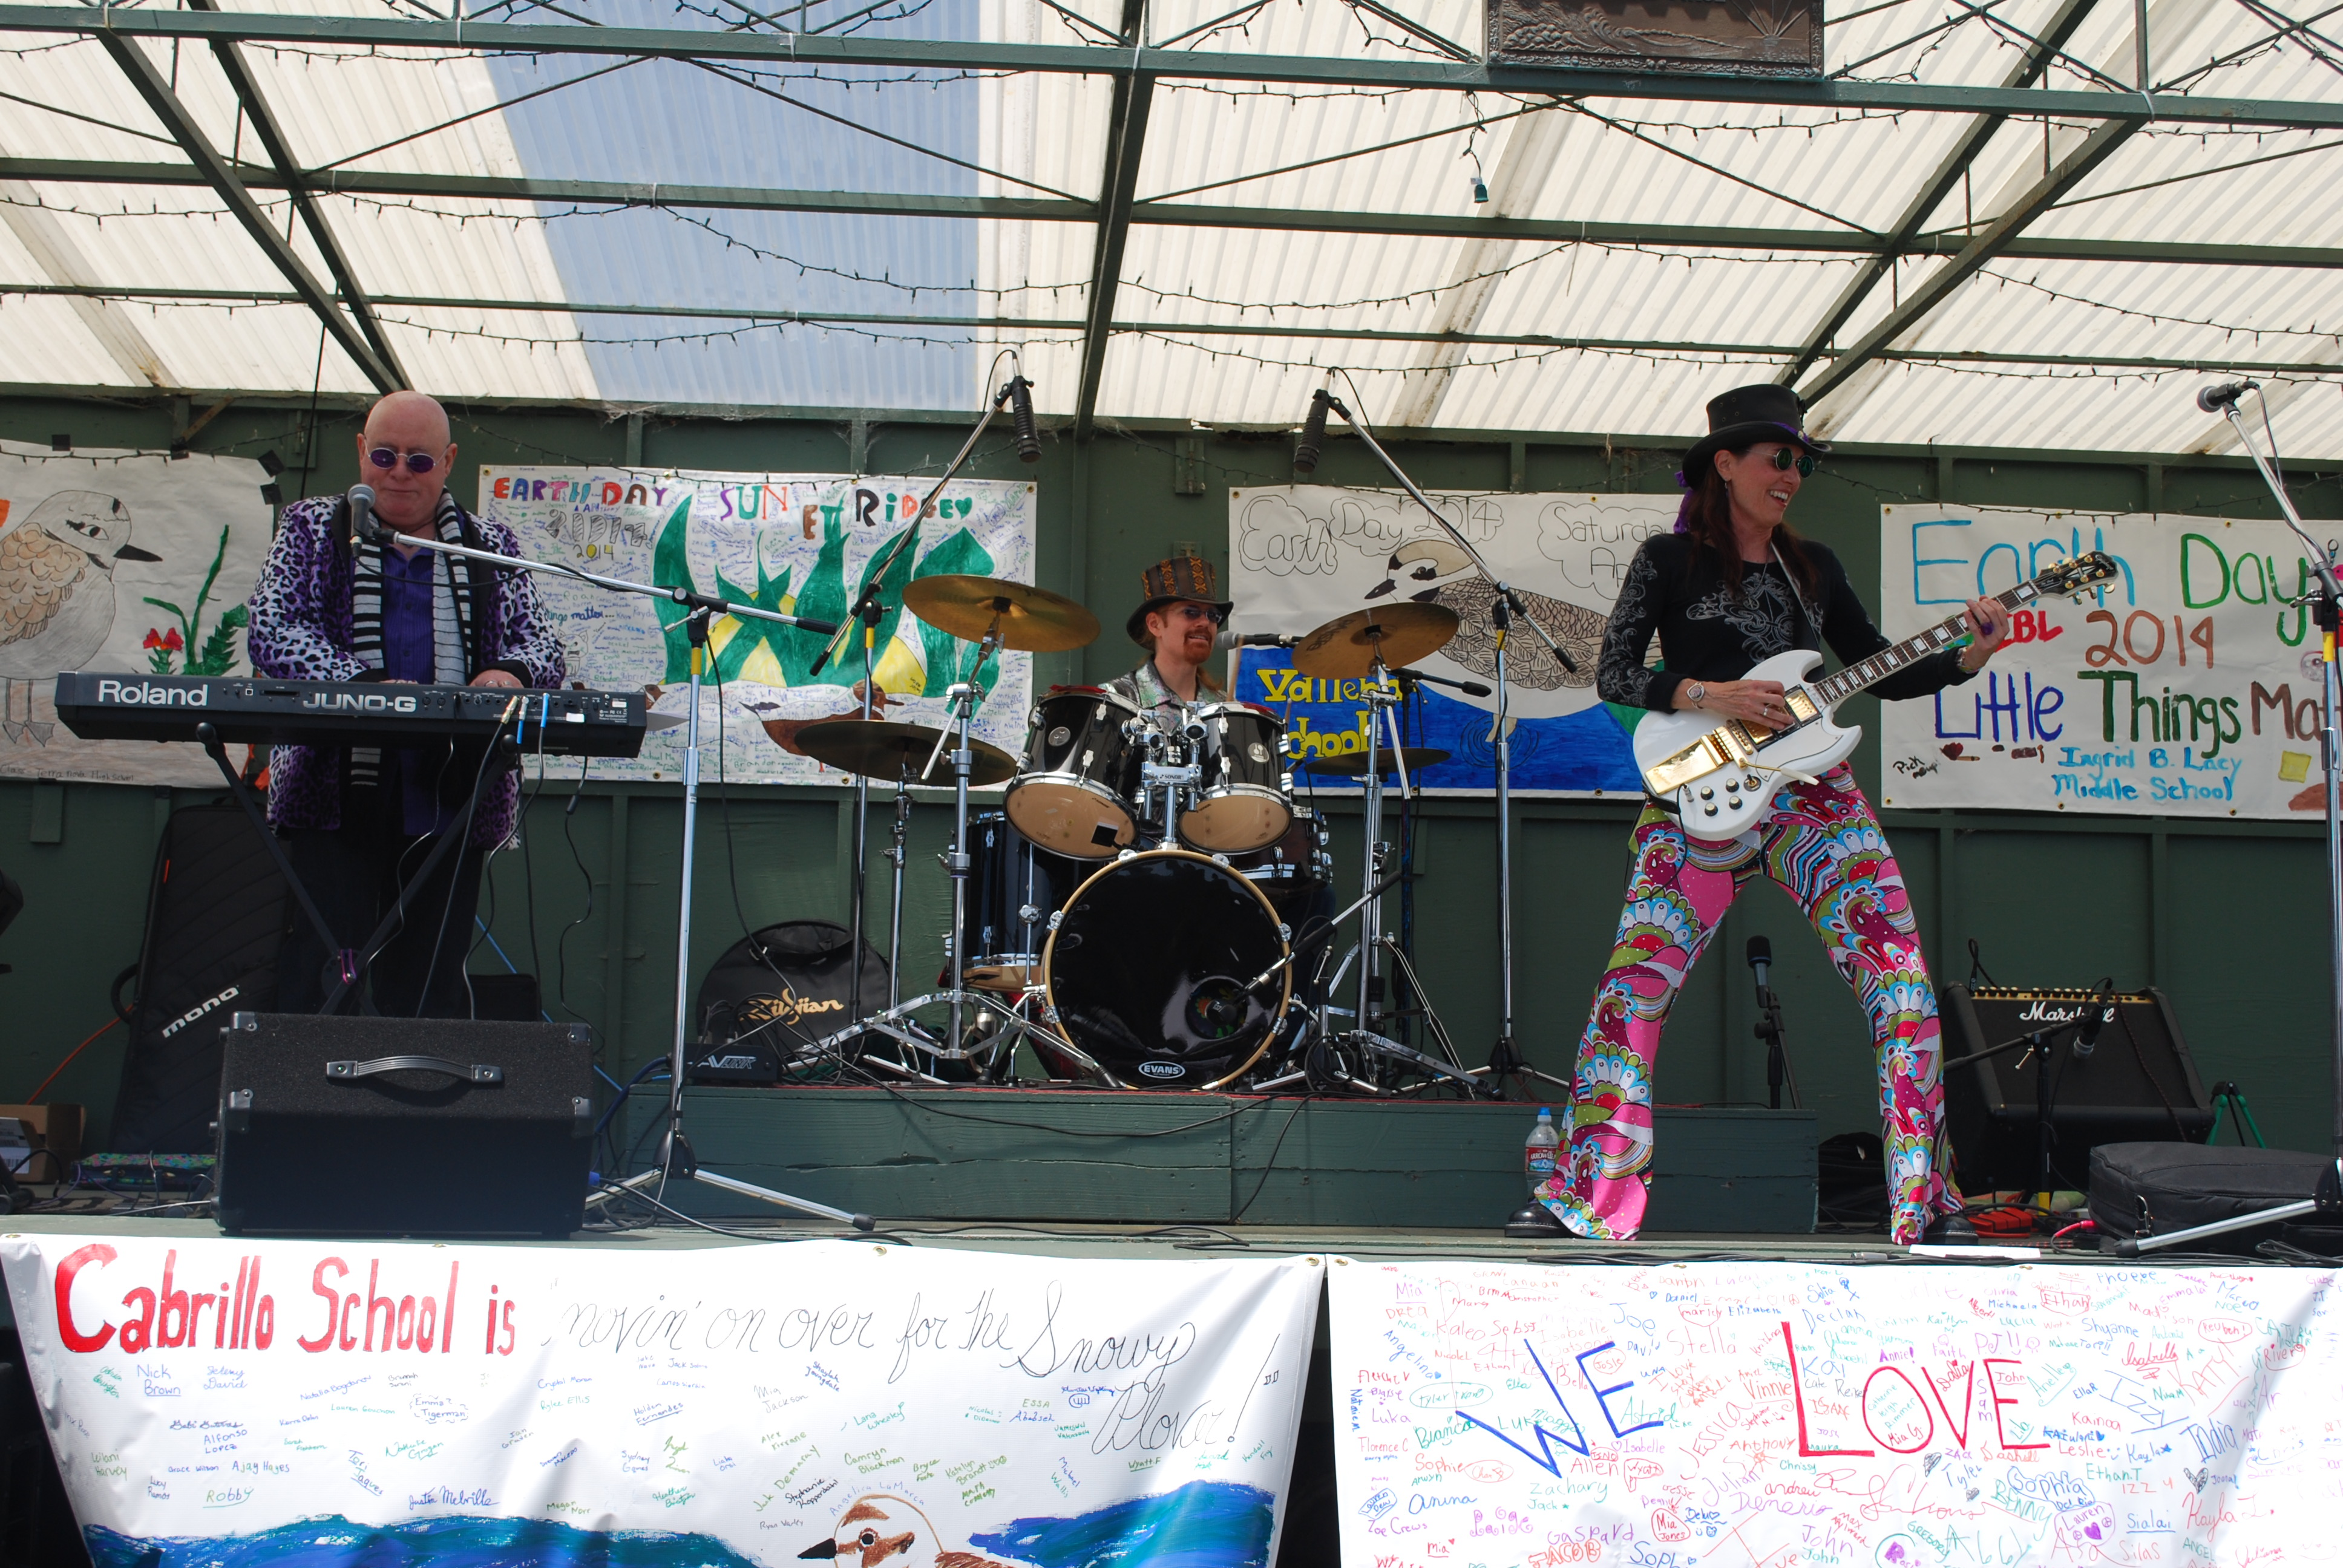 Groovy Judy Band at EcoFest in Pacifica, CA